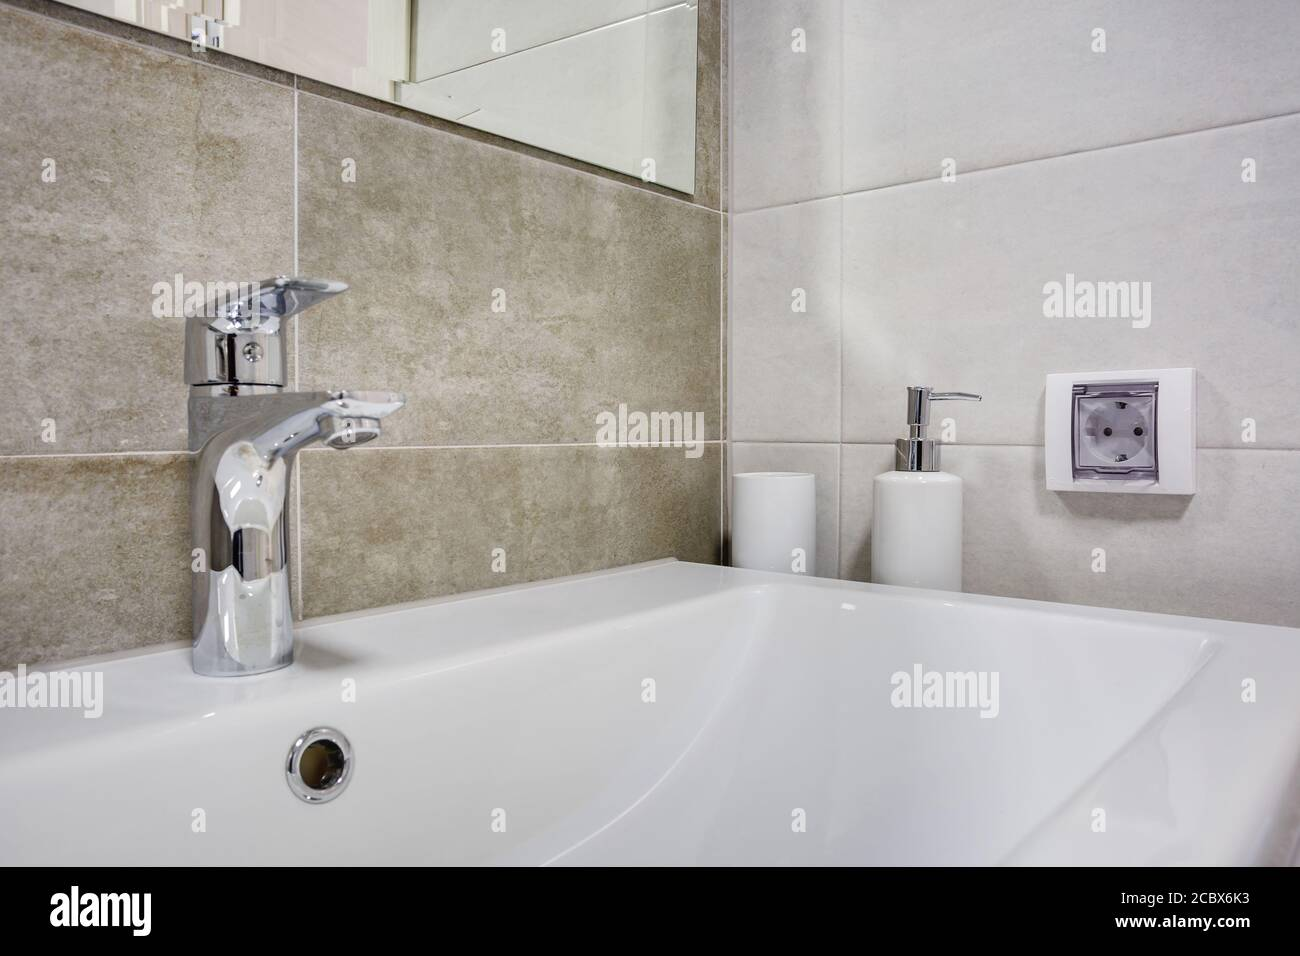 Water Tap Sink With Faucet In Expensive Loft Bathroom Or Kitchen Stock Photo Alamy